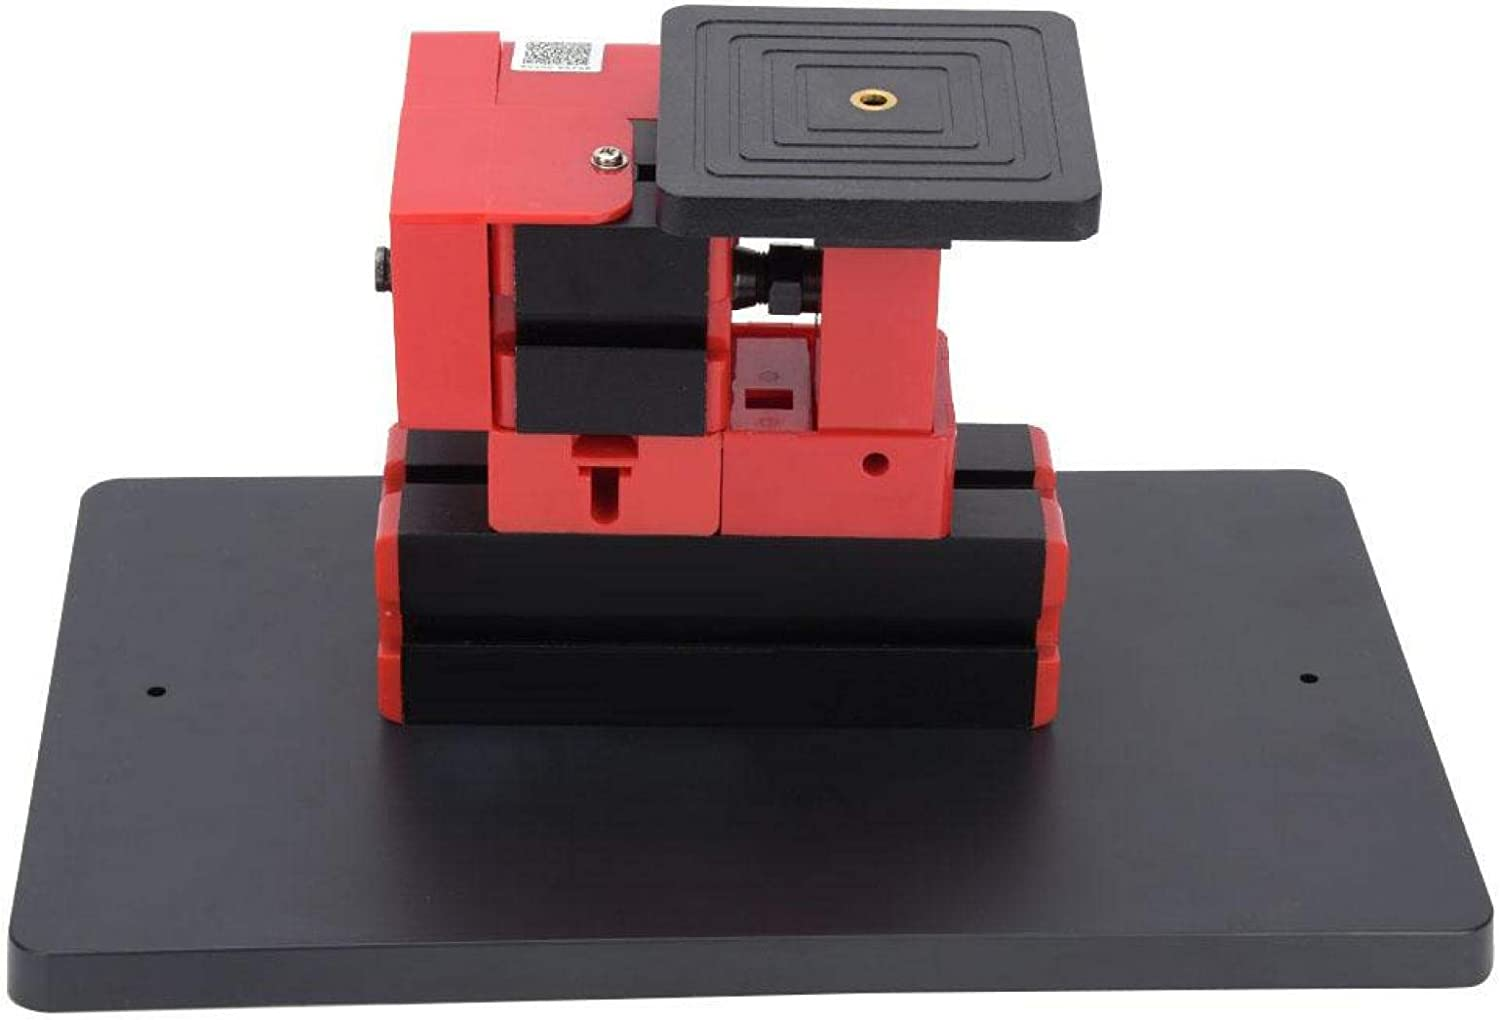 US Plug 100-240V Factory outlet Mini Jigsaw 90mm Machine Online limited product Saw x Table